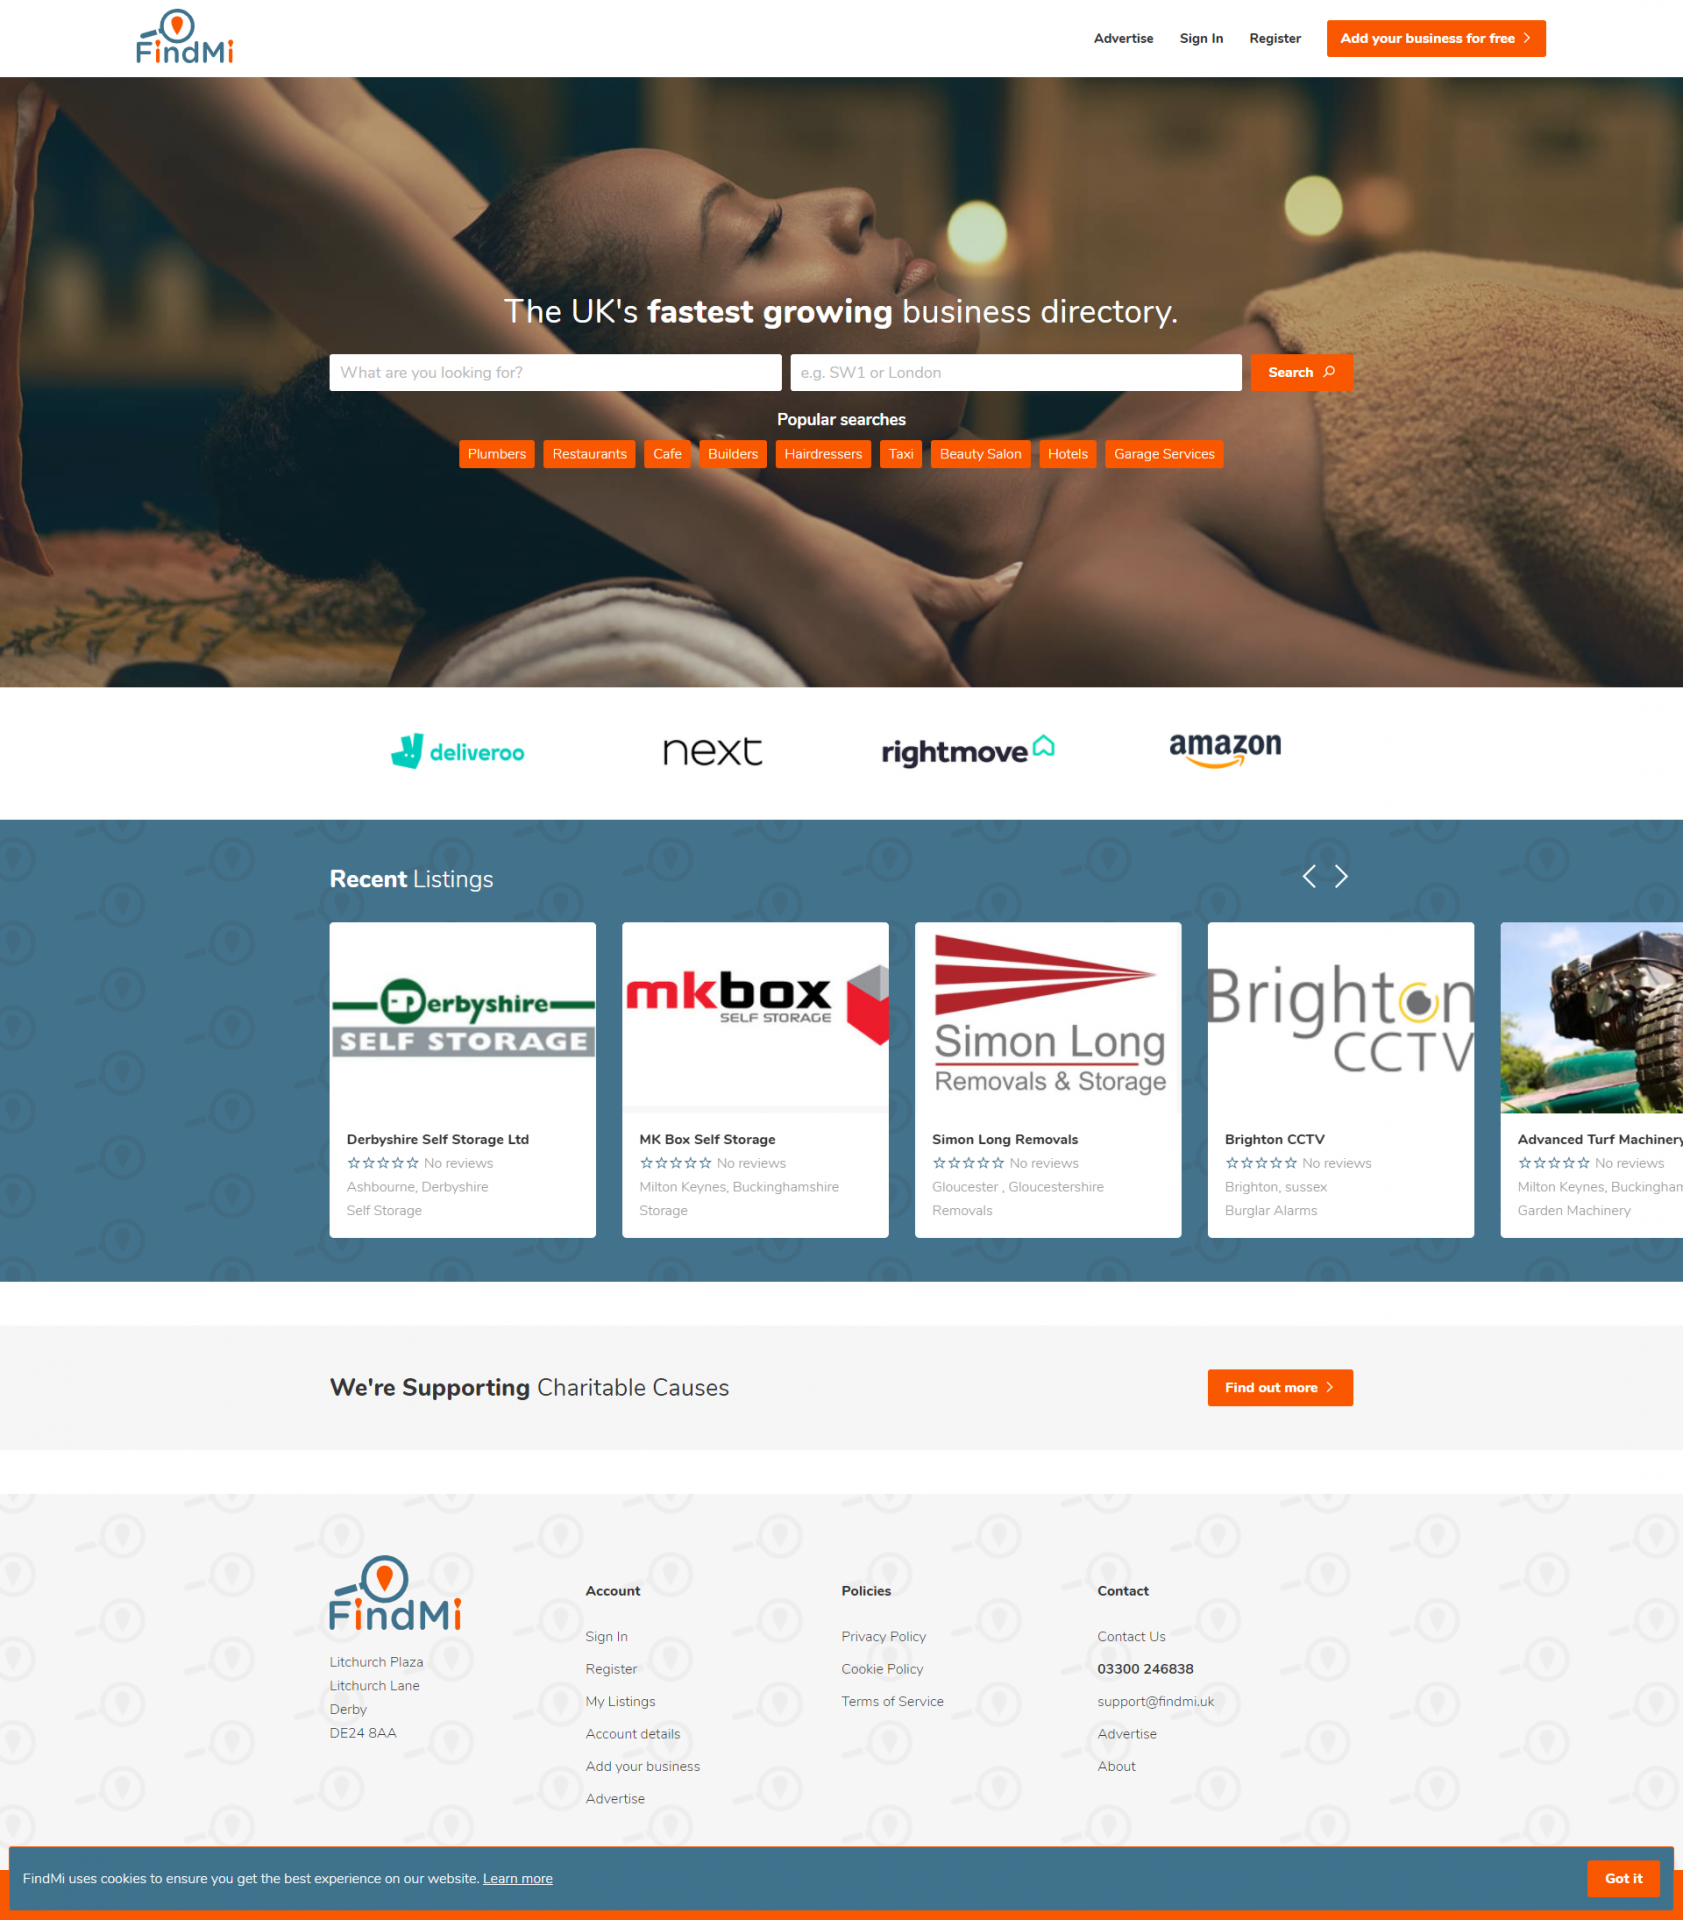 Scrolling screen capture of the Findmi Website